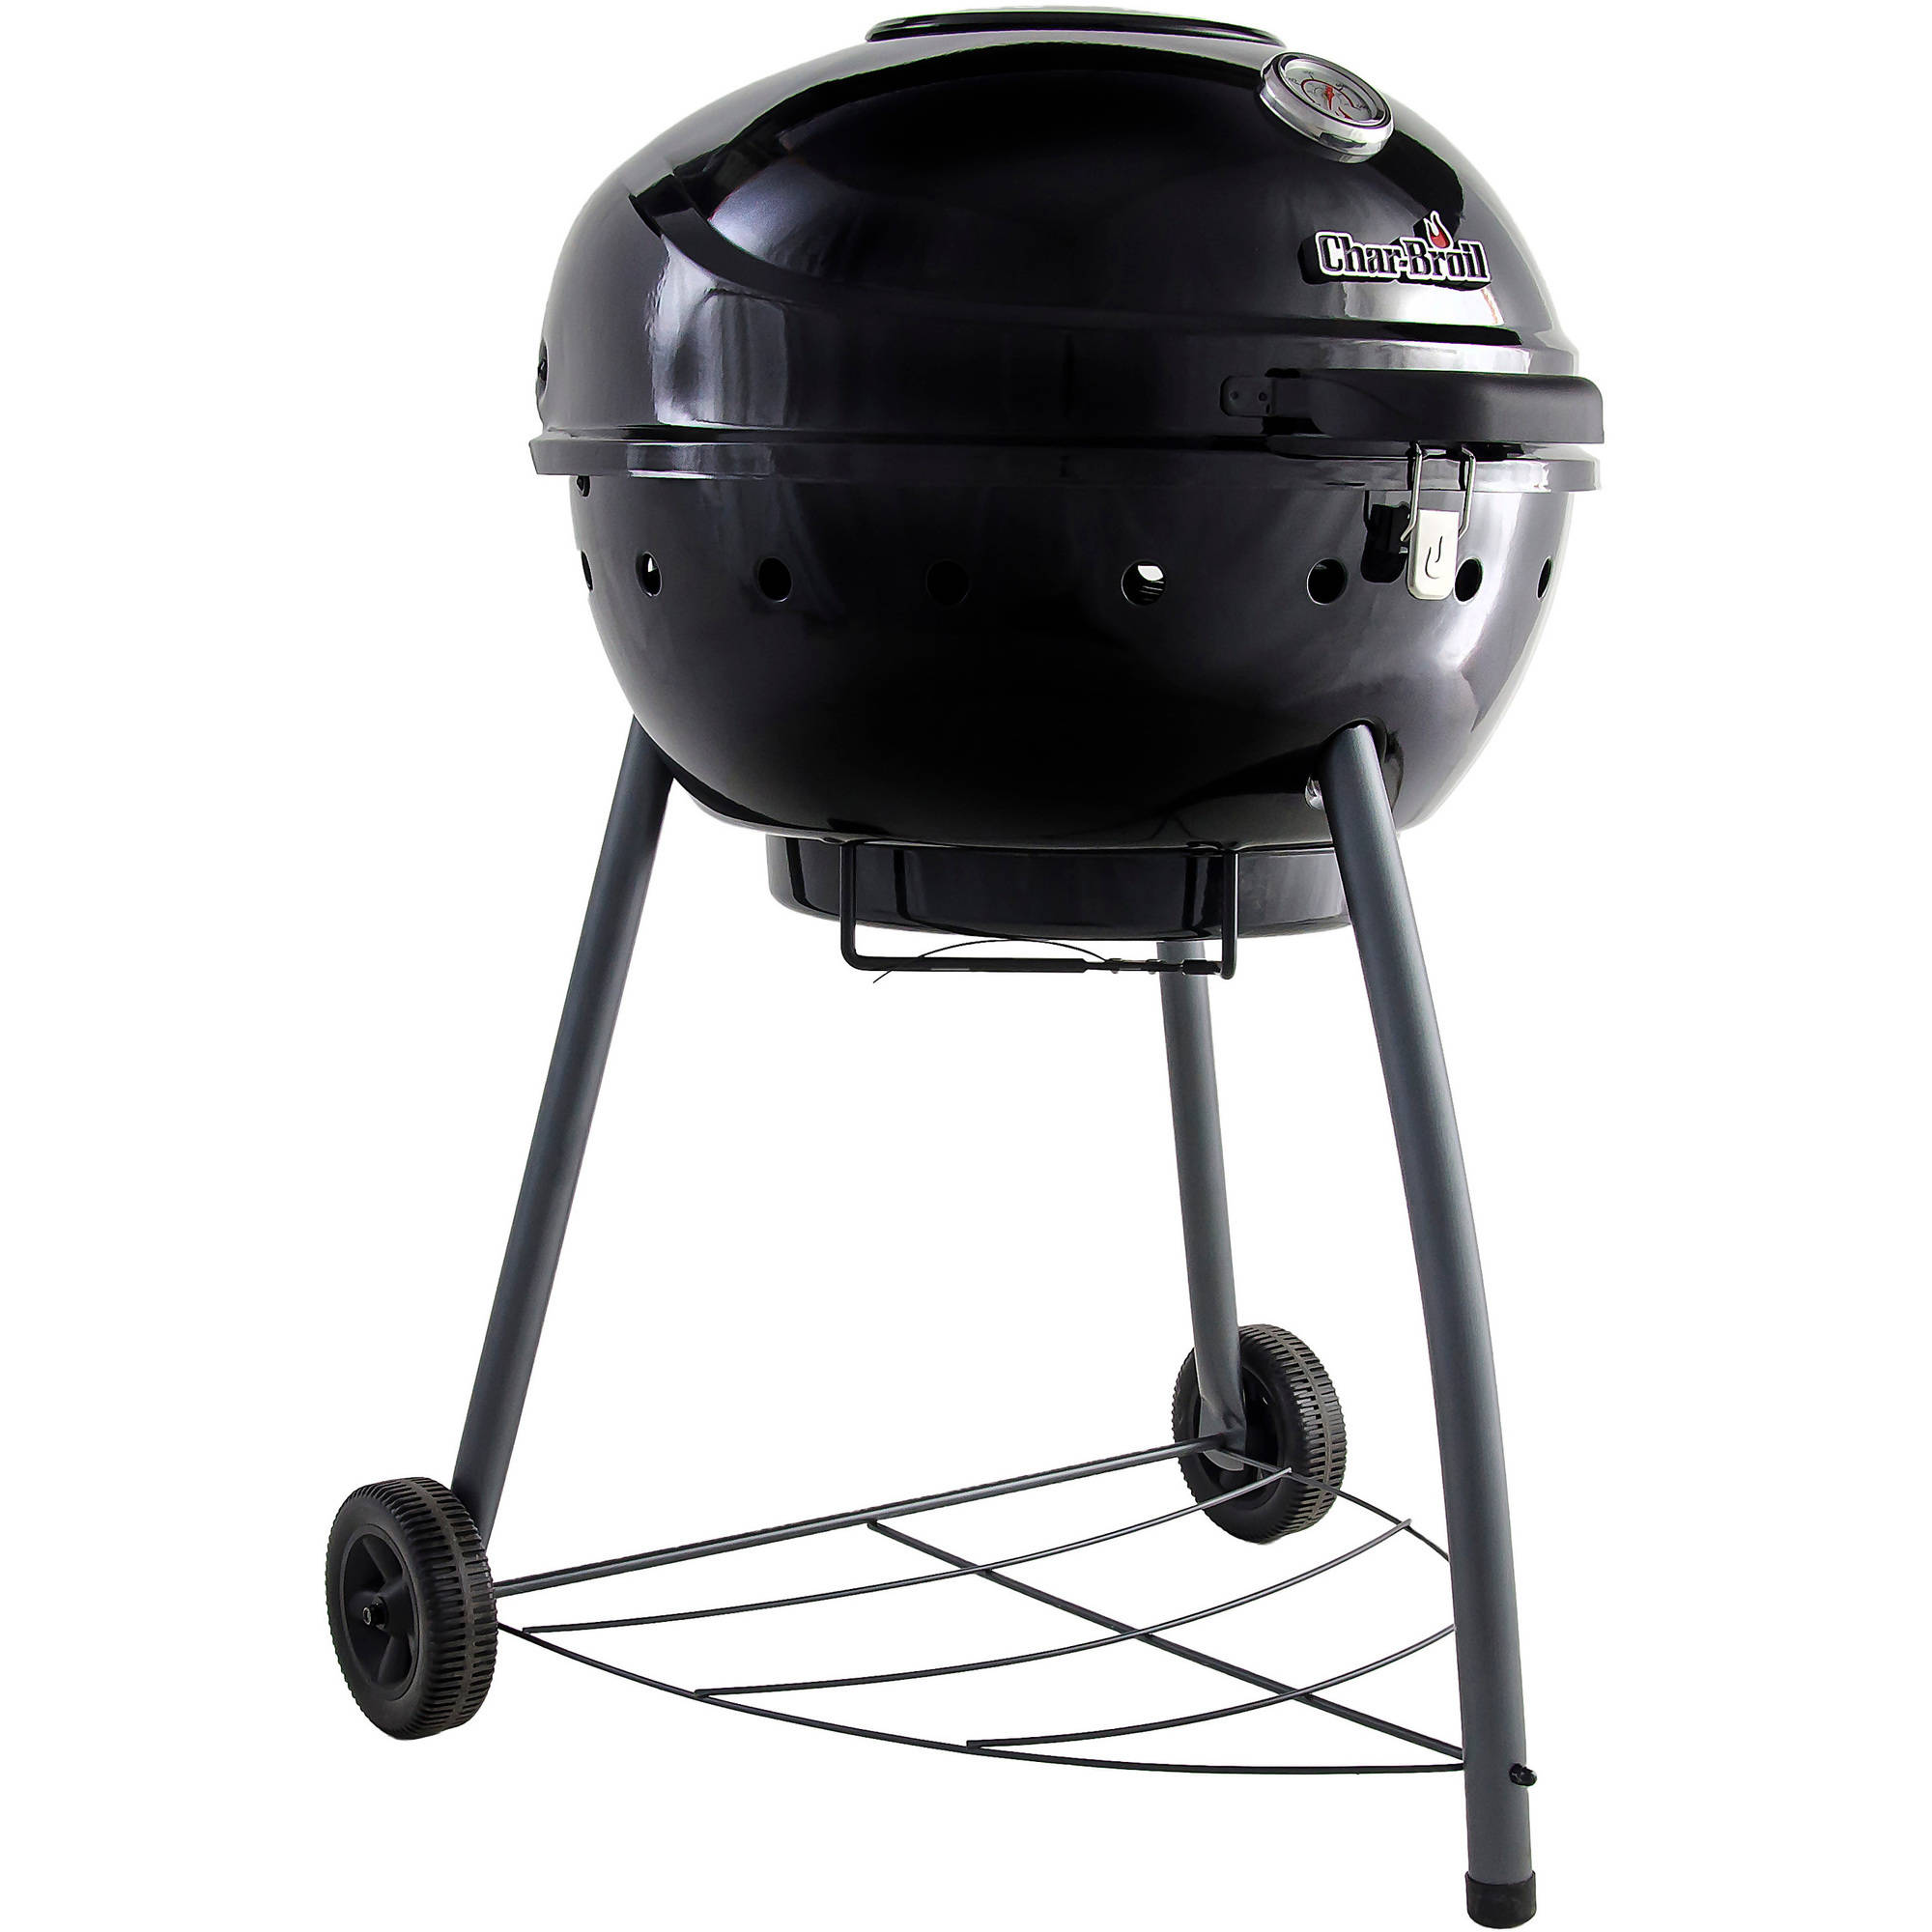 "Charbroil 22.5"" Charcoal Kettle Grill"